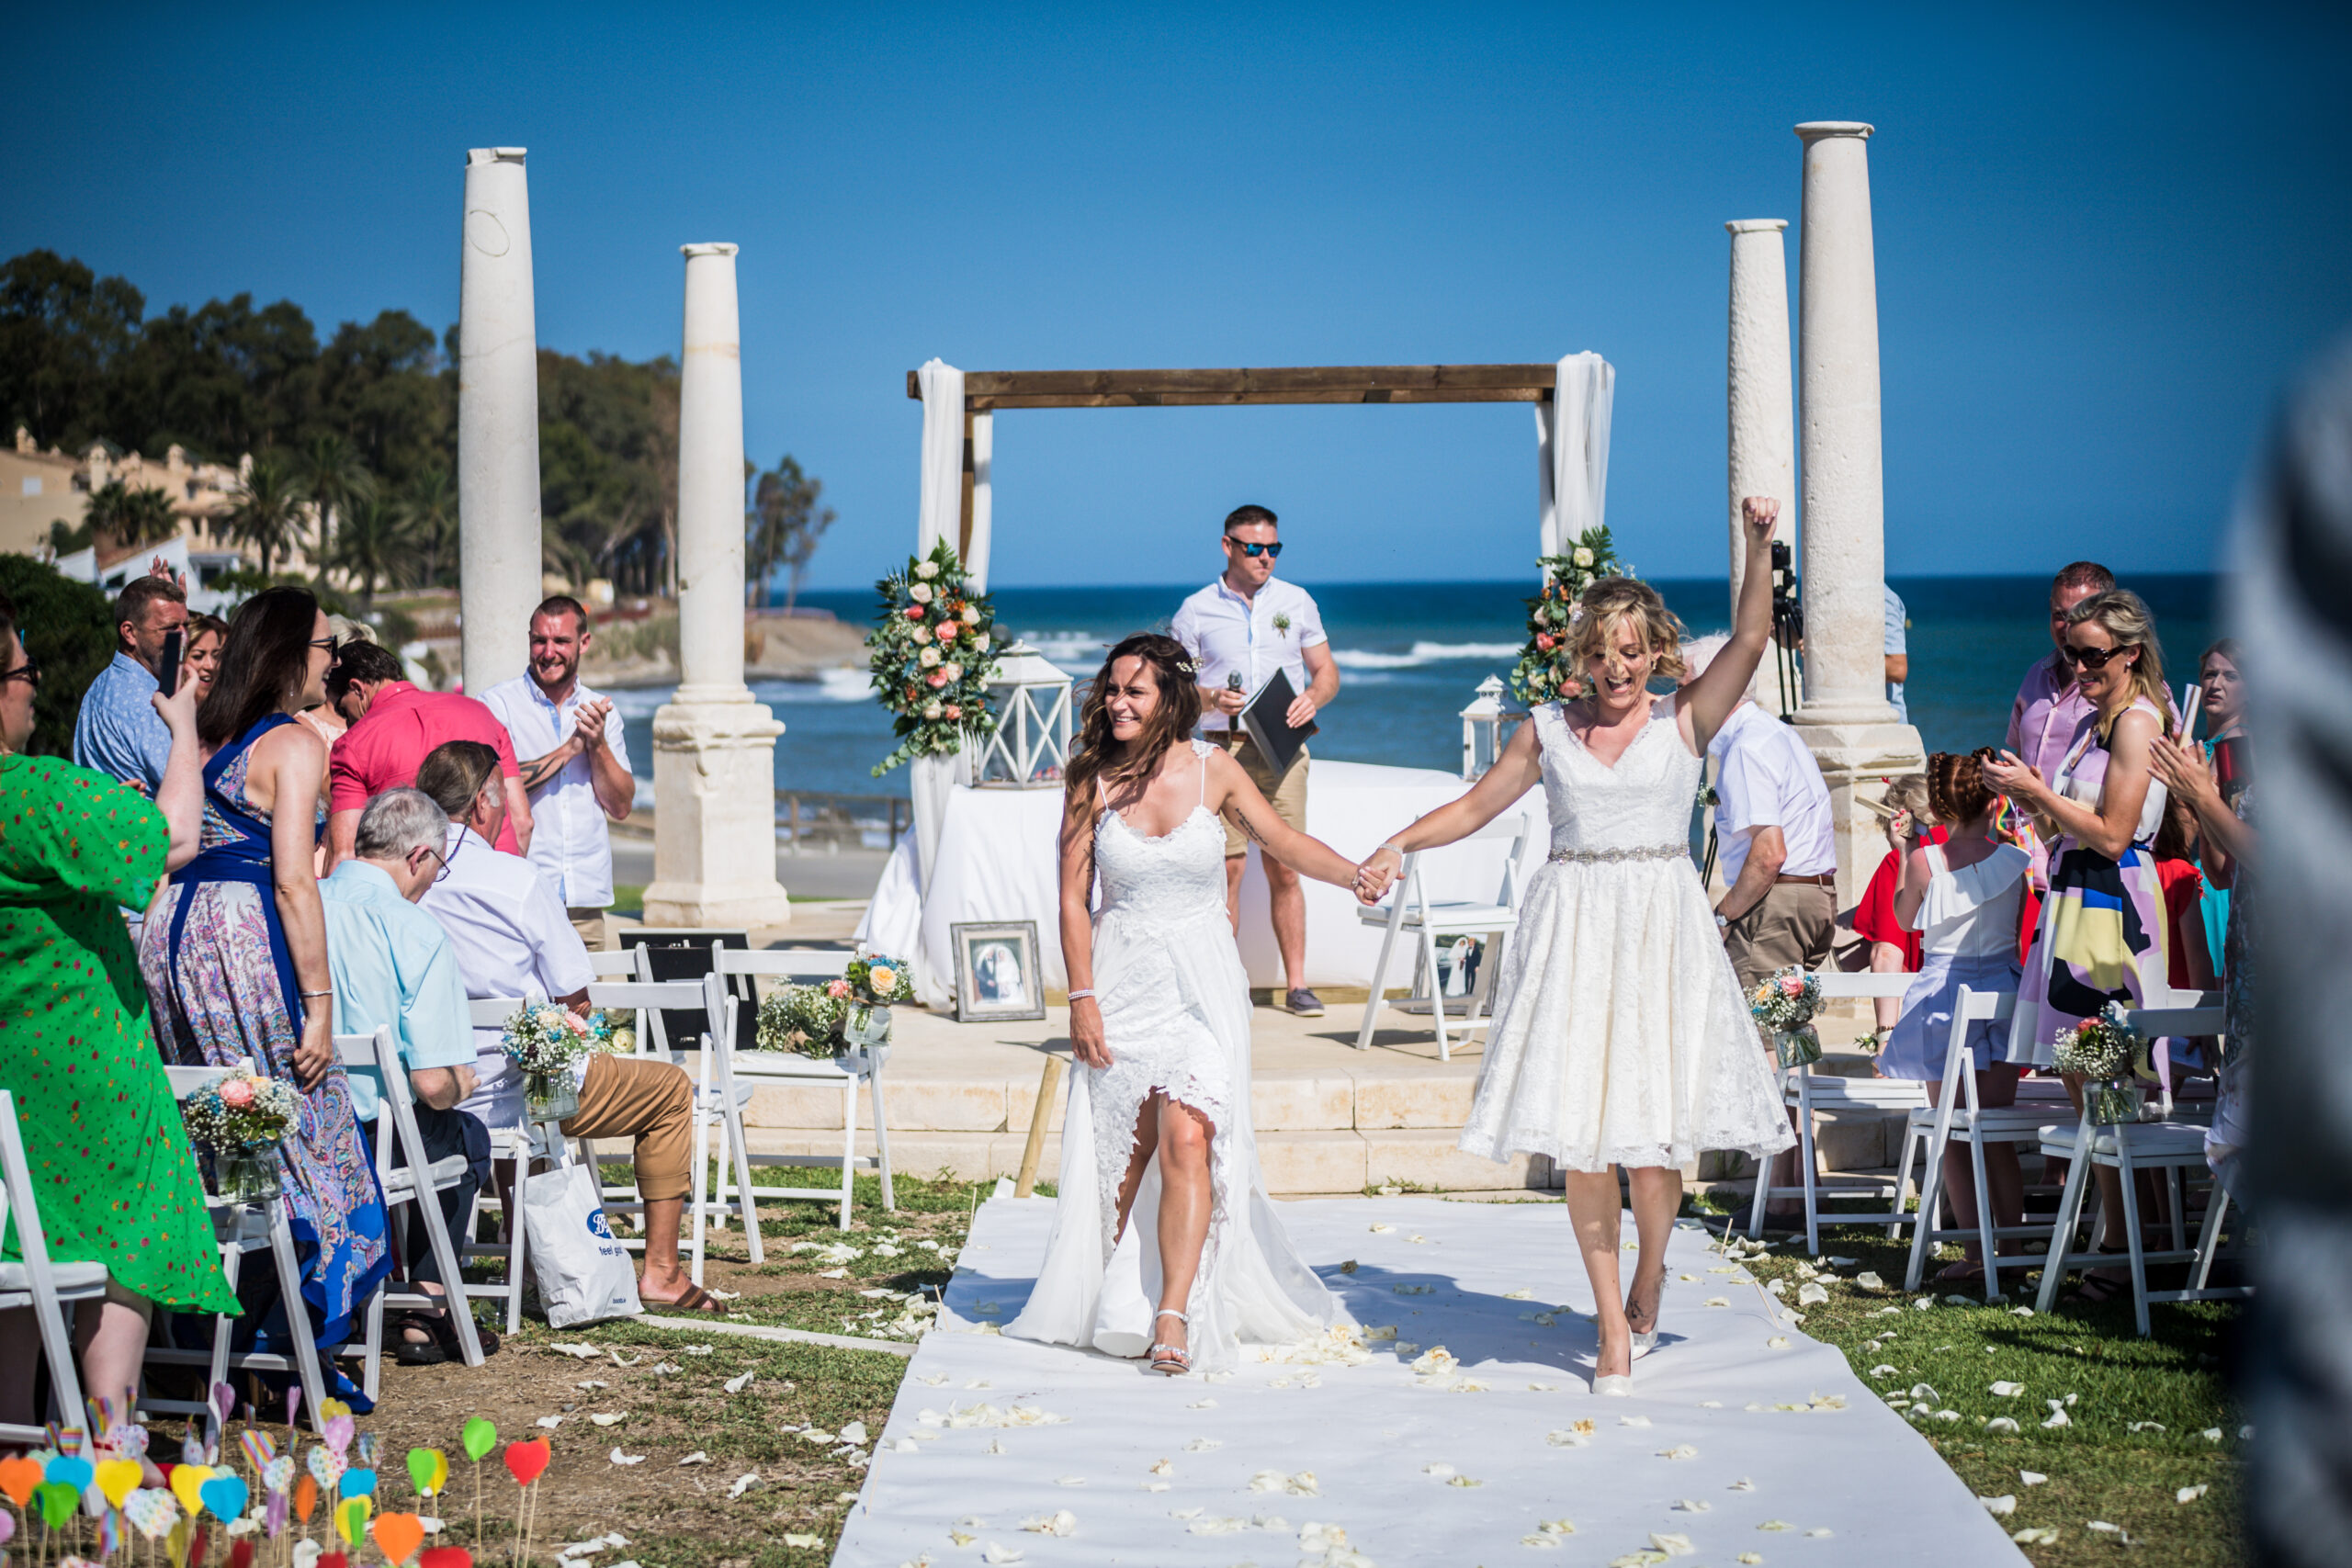 The newlyweds walking down the aisle after their beach-side ceremony - Rebecca Davidson Photography